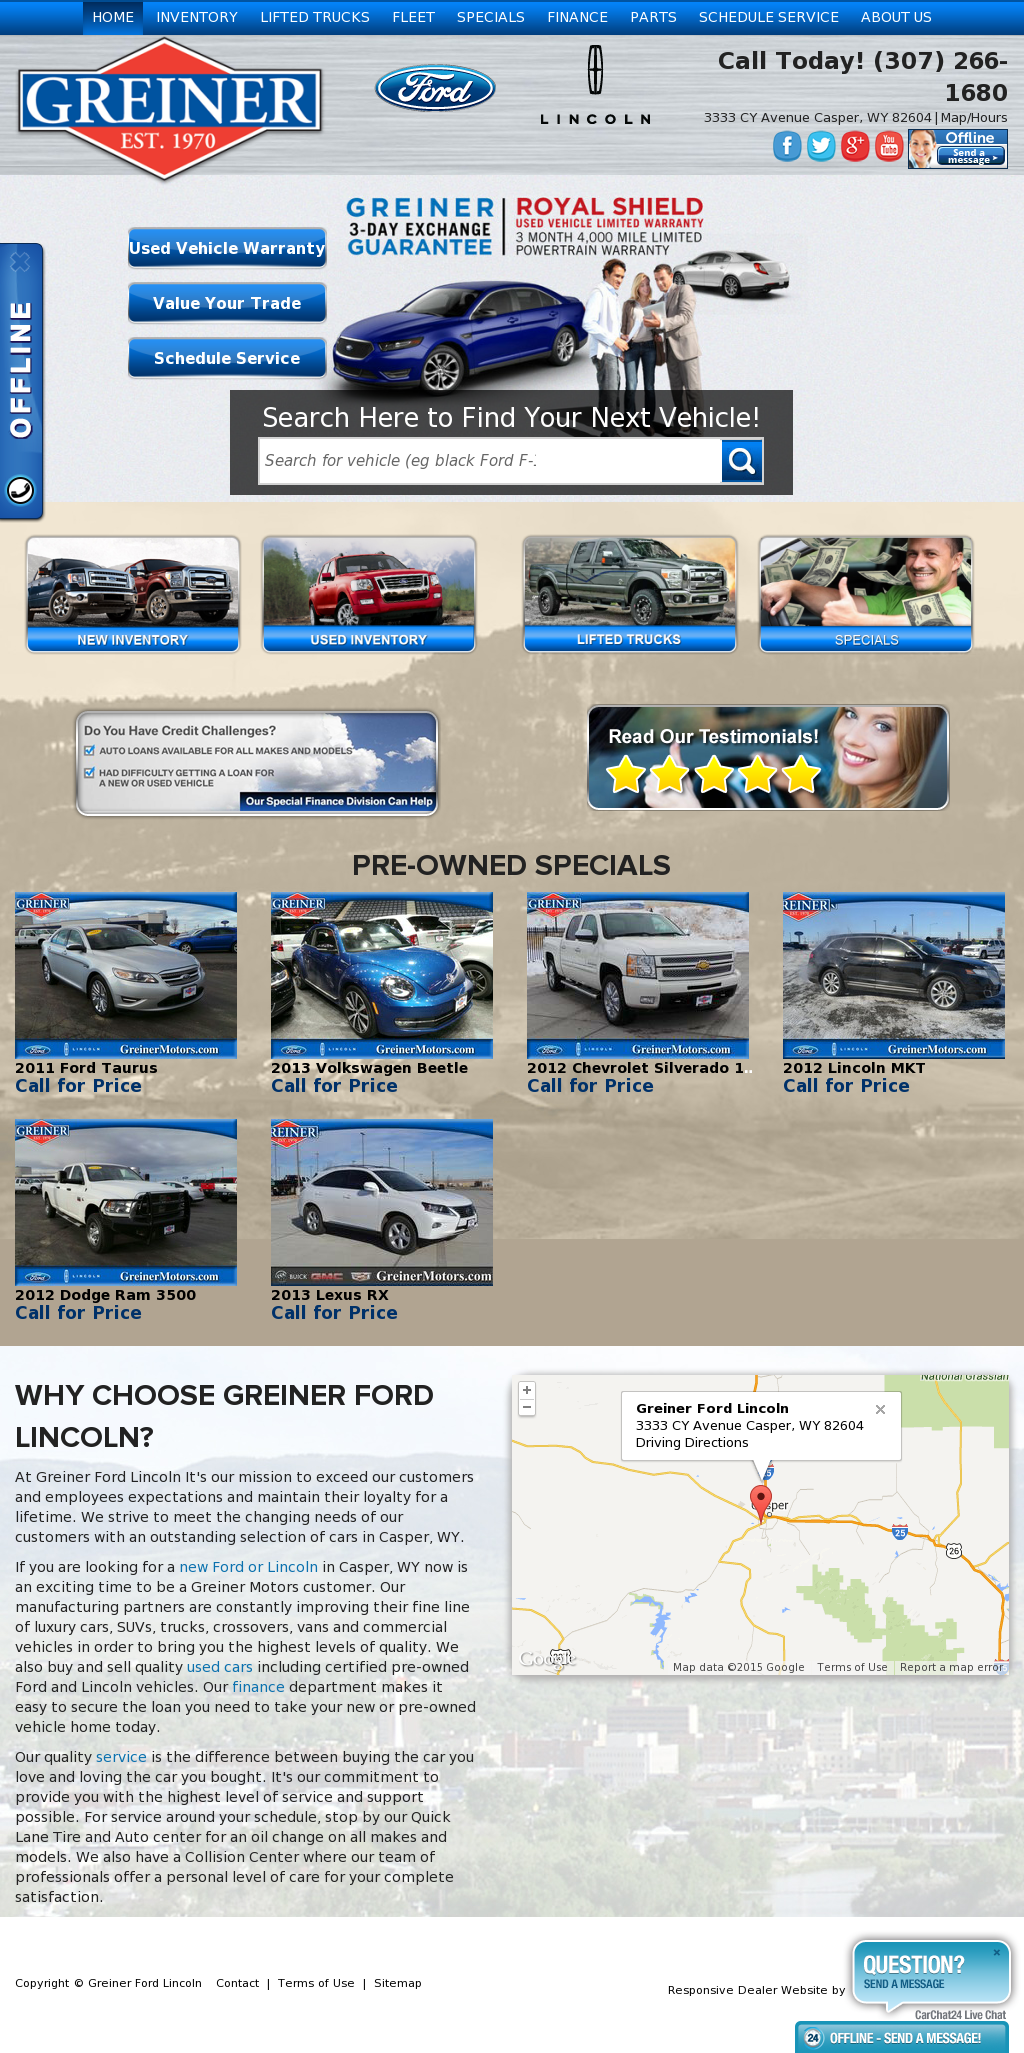 Greiner Ford Casper Wy >> Greiner Ford Lincoln Competitors Revenue And Employees